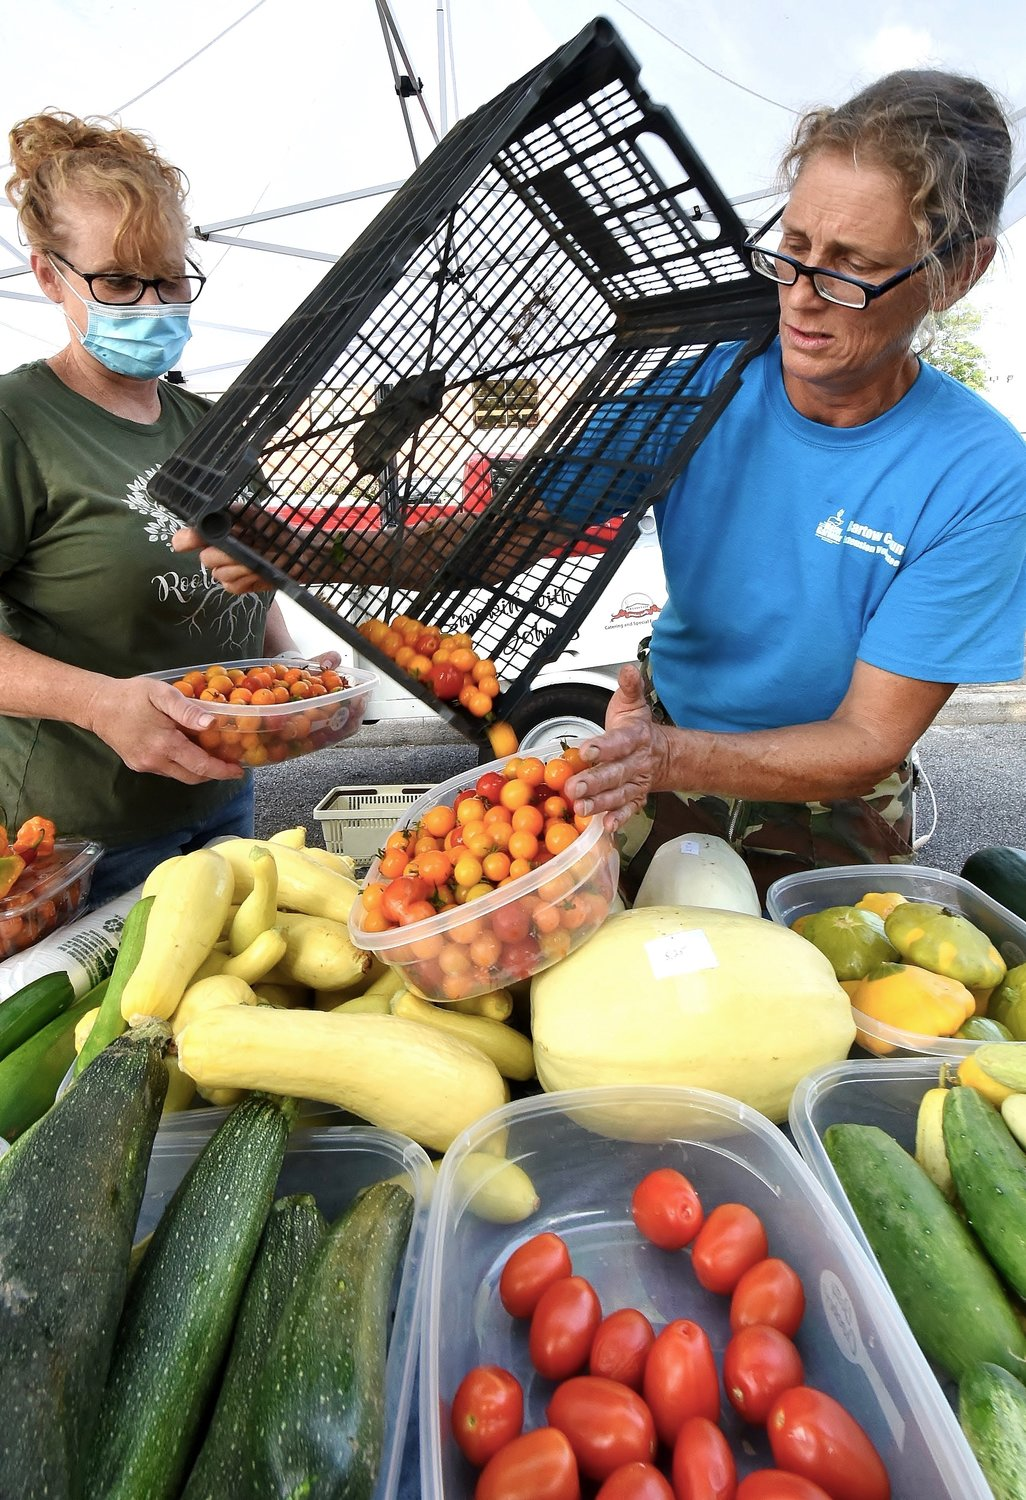 Samijo Miron, right, and Shana Smith, of Southern Sown, offer many different fresh vegetables at the Cartersville Farmers Market.